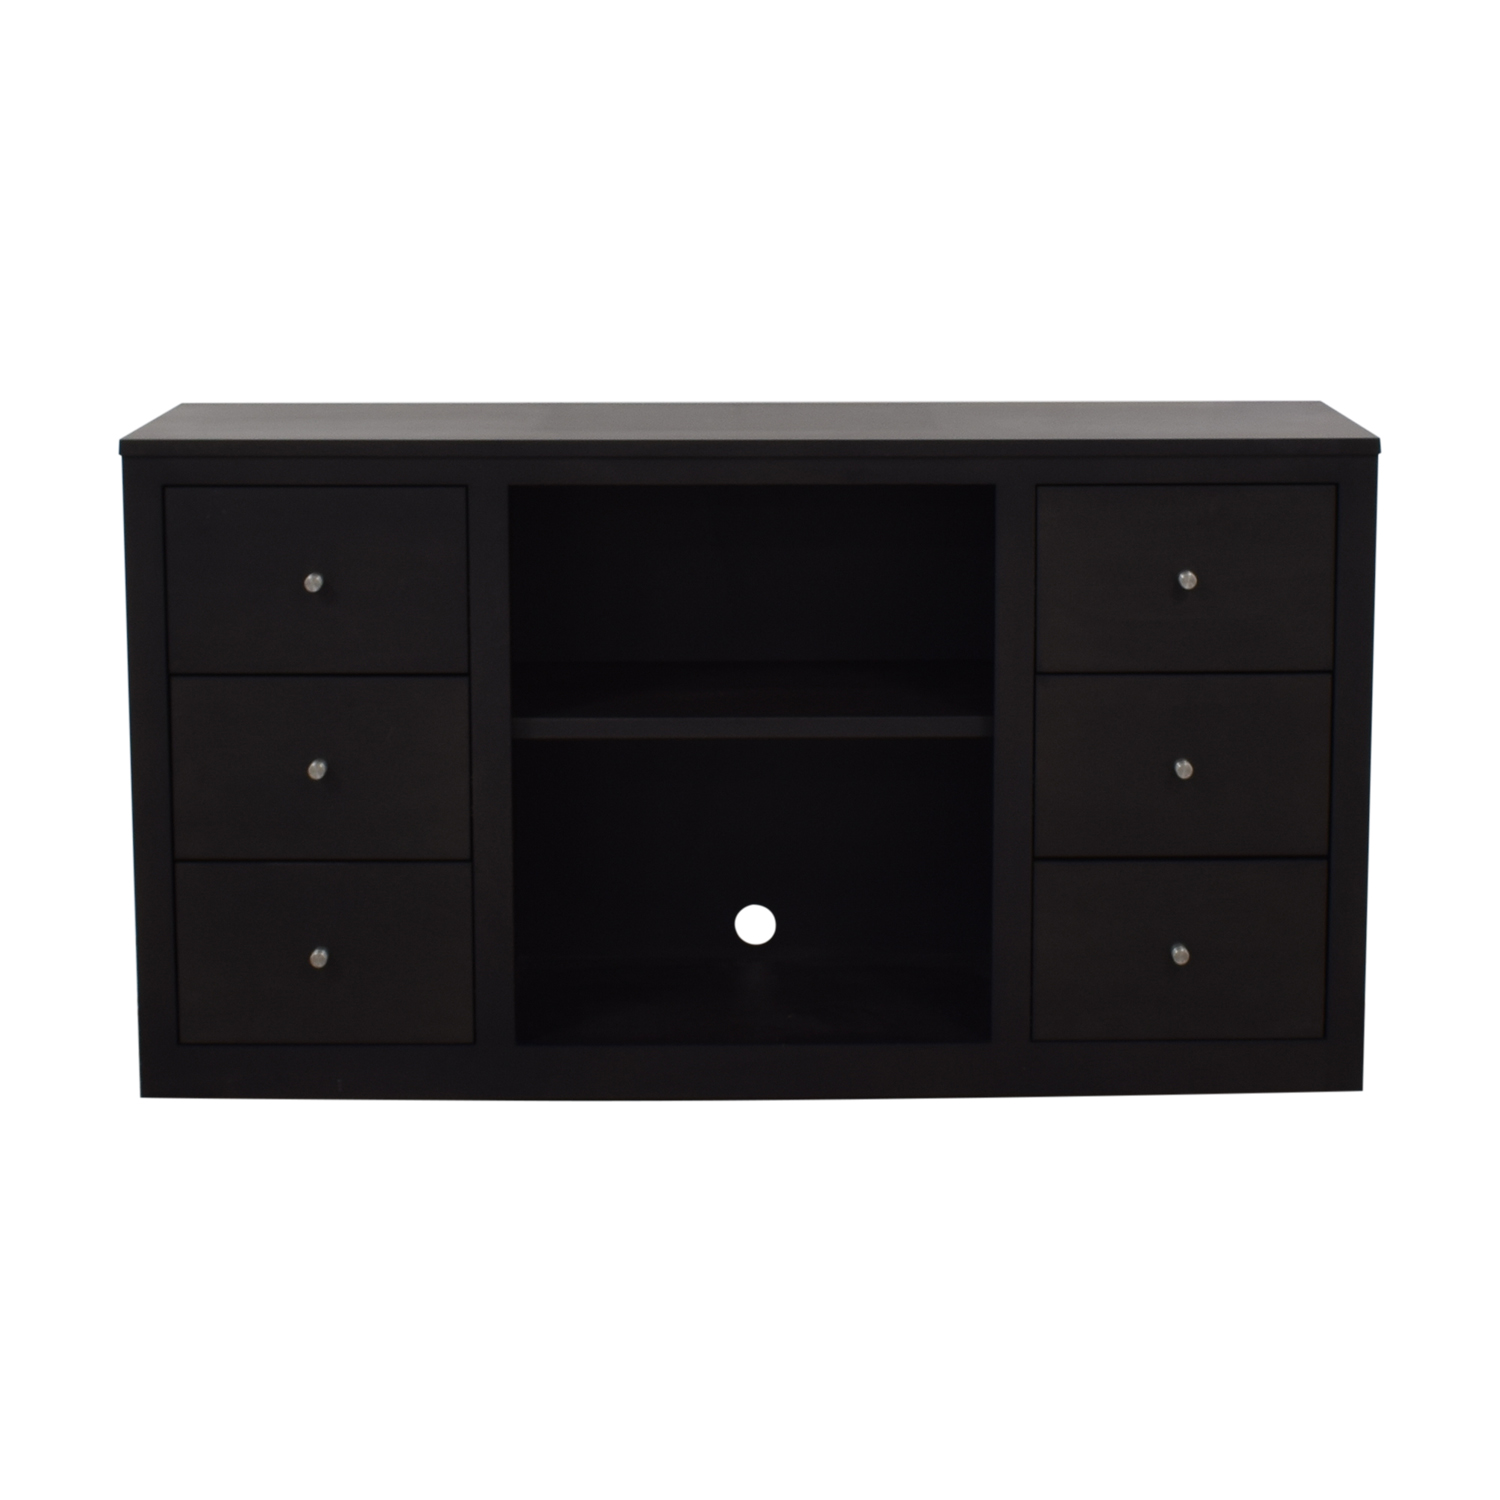 Room & Board Woodwind Maple With Charcoal Stain Media Cabinet / Sofas